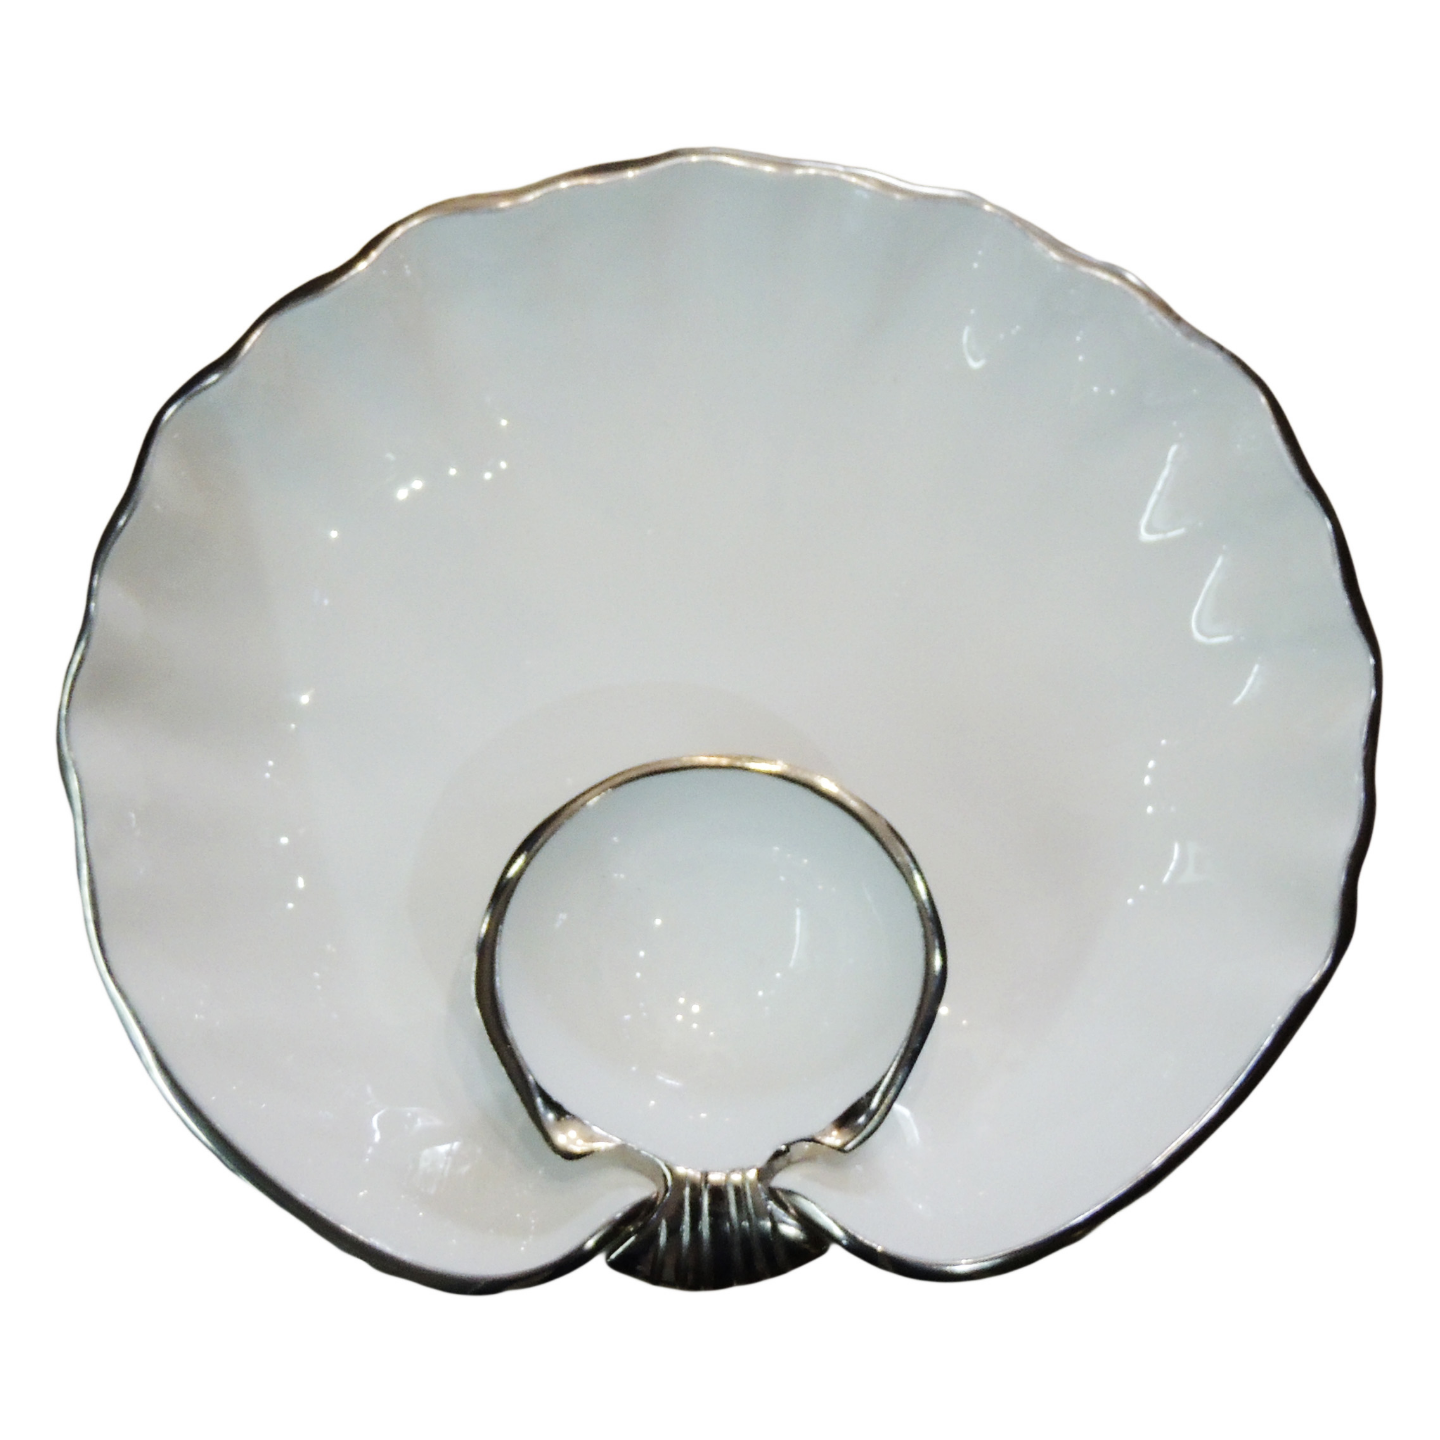 Decorative Round Shape Tray Platter - 11.5 Inch (A3189/12)